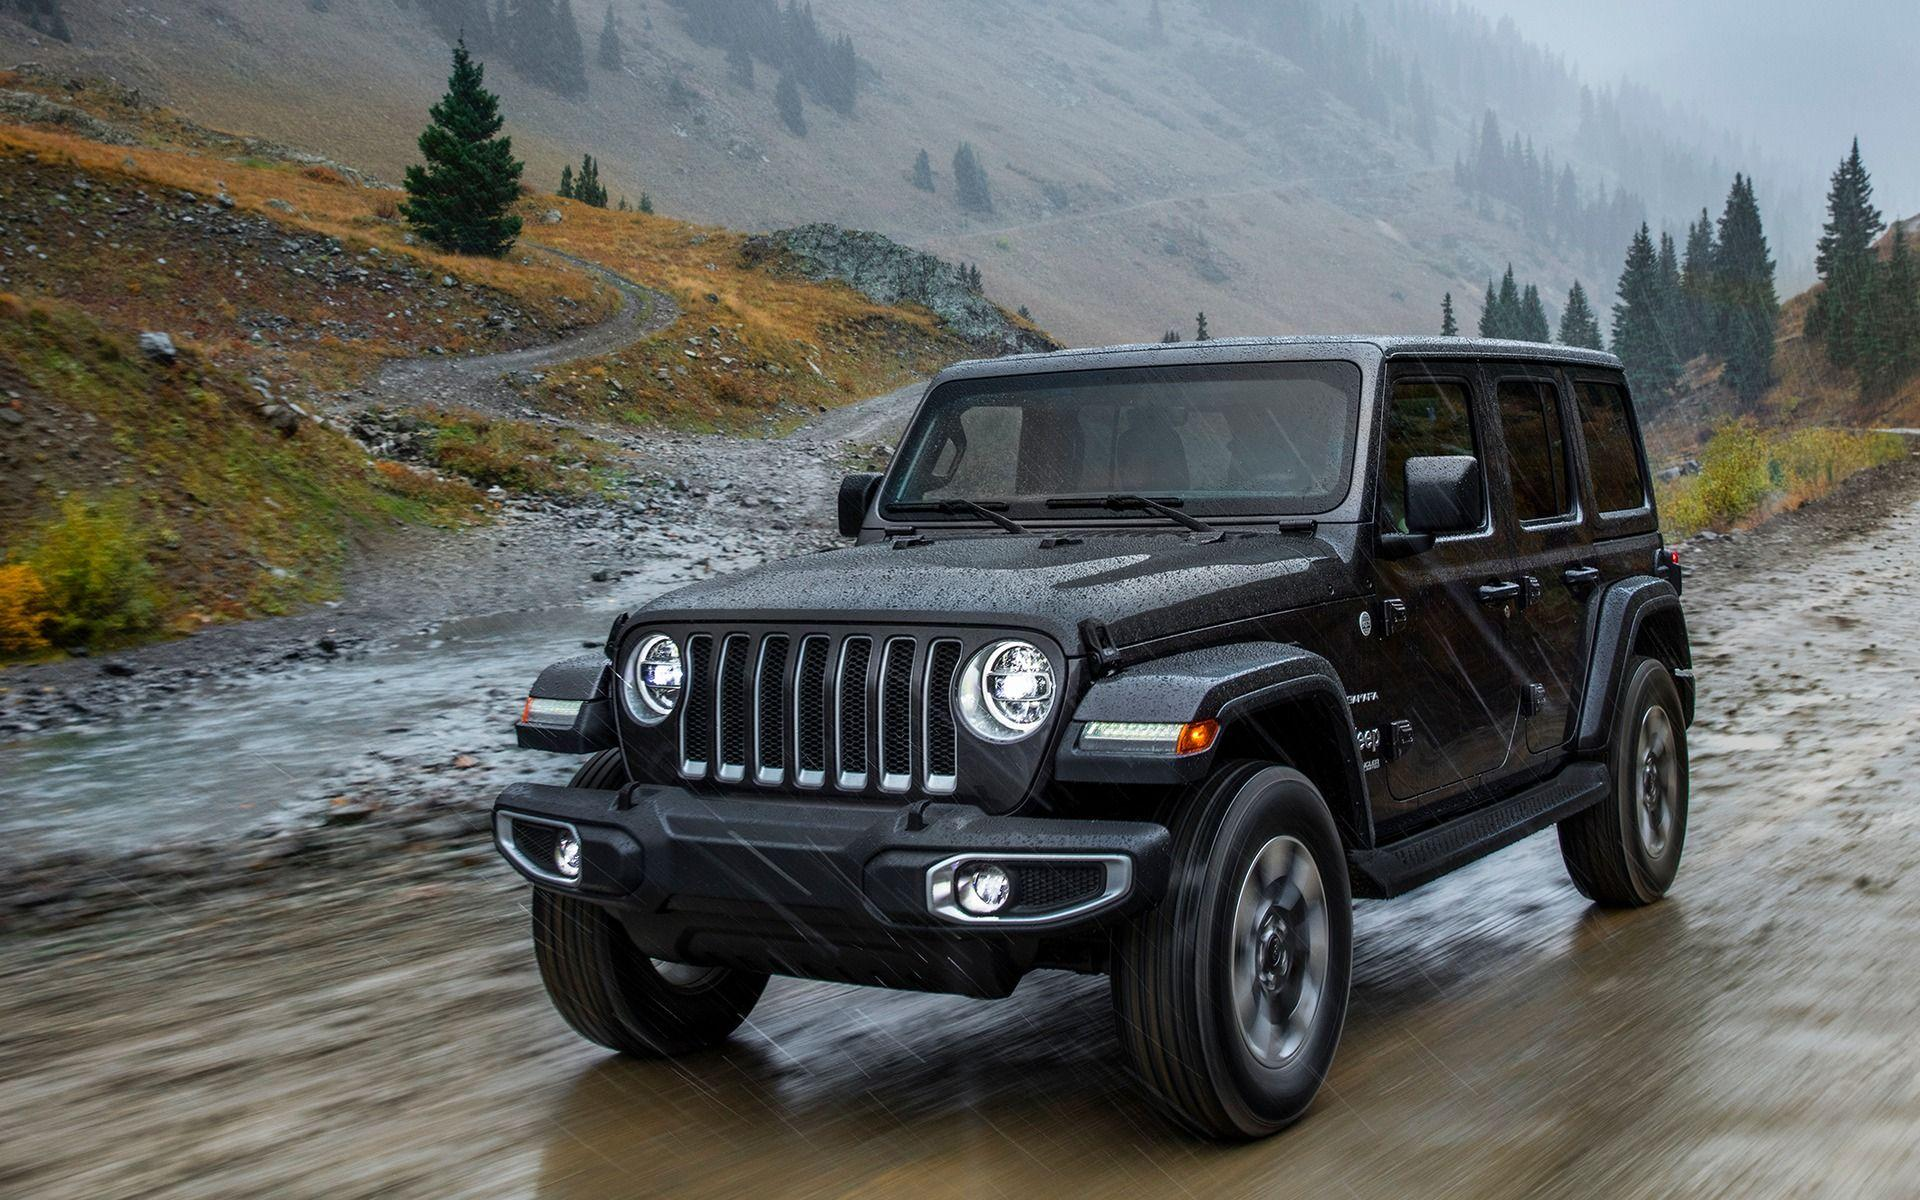 The 2018 Jeep Wrangler Sahara in Pictures